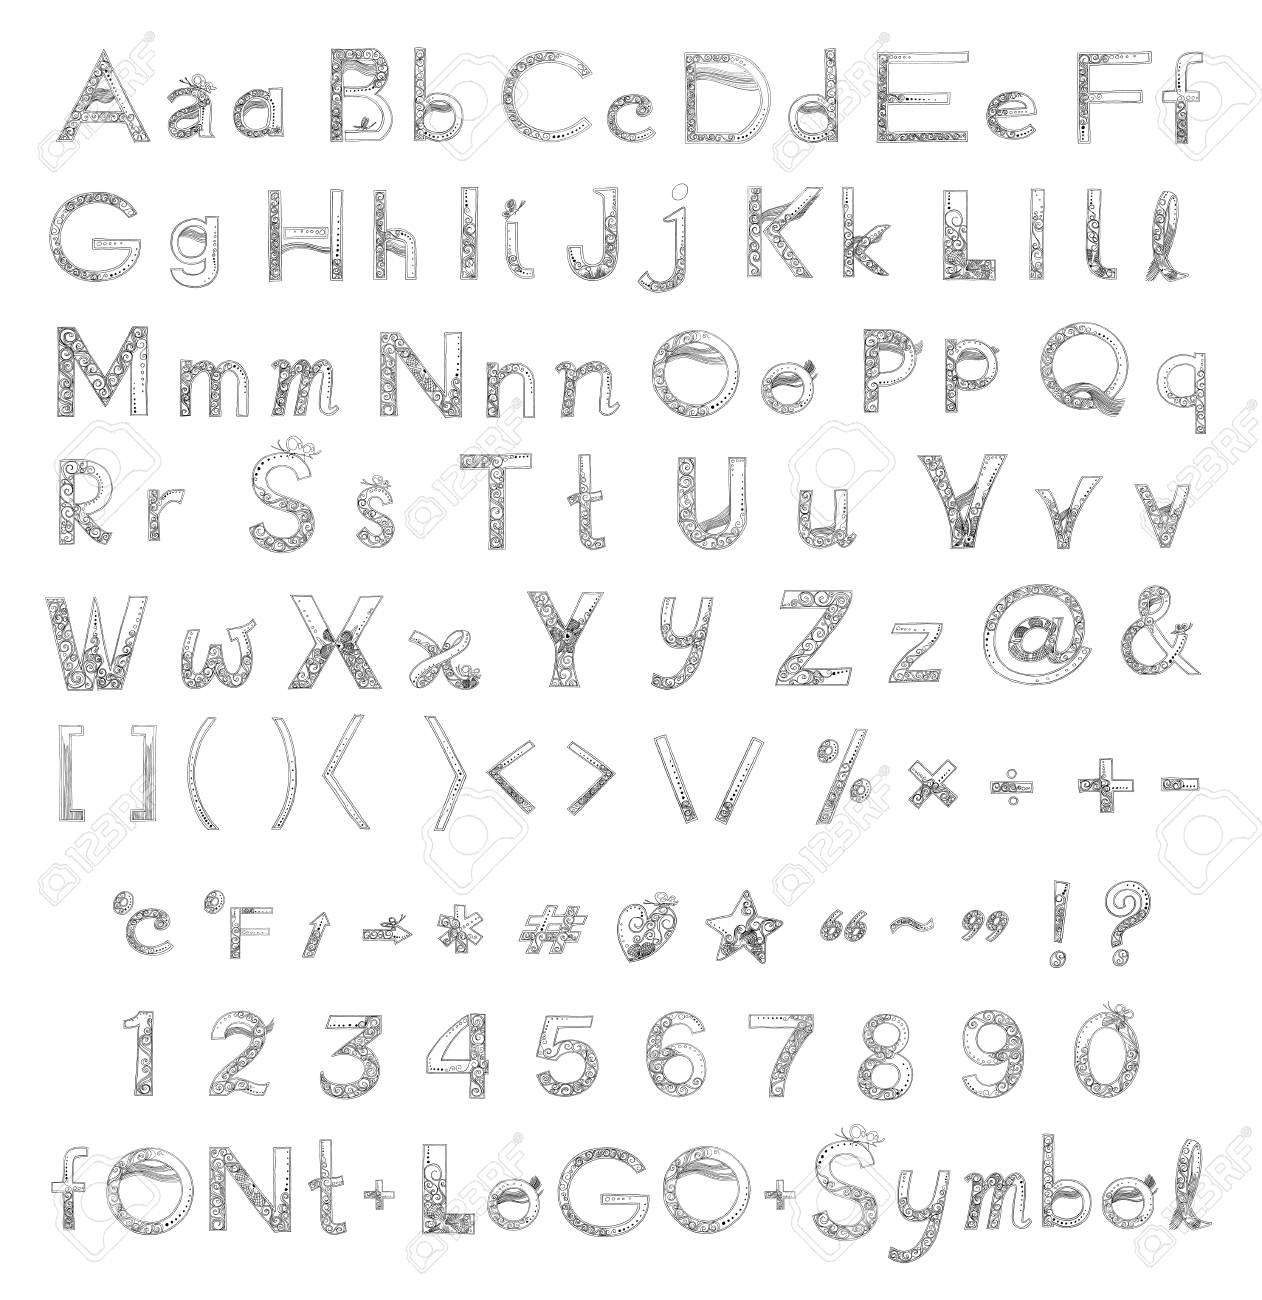 Font a to z and number design of vanda orchid flower freehand